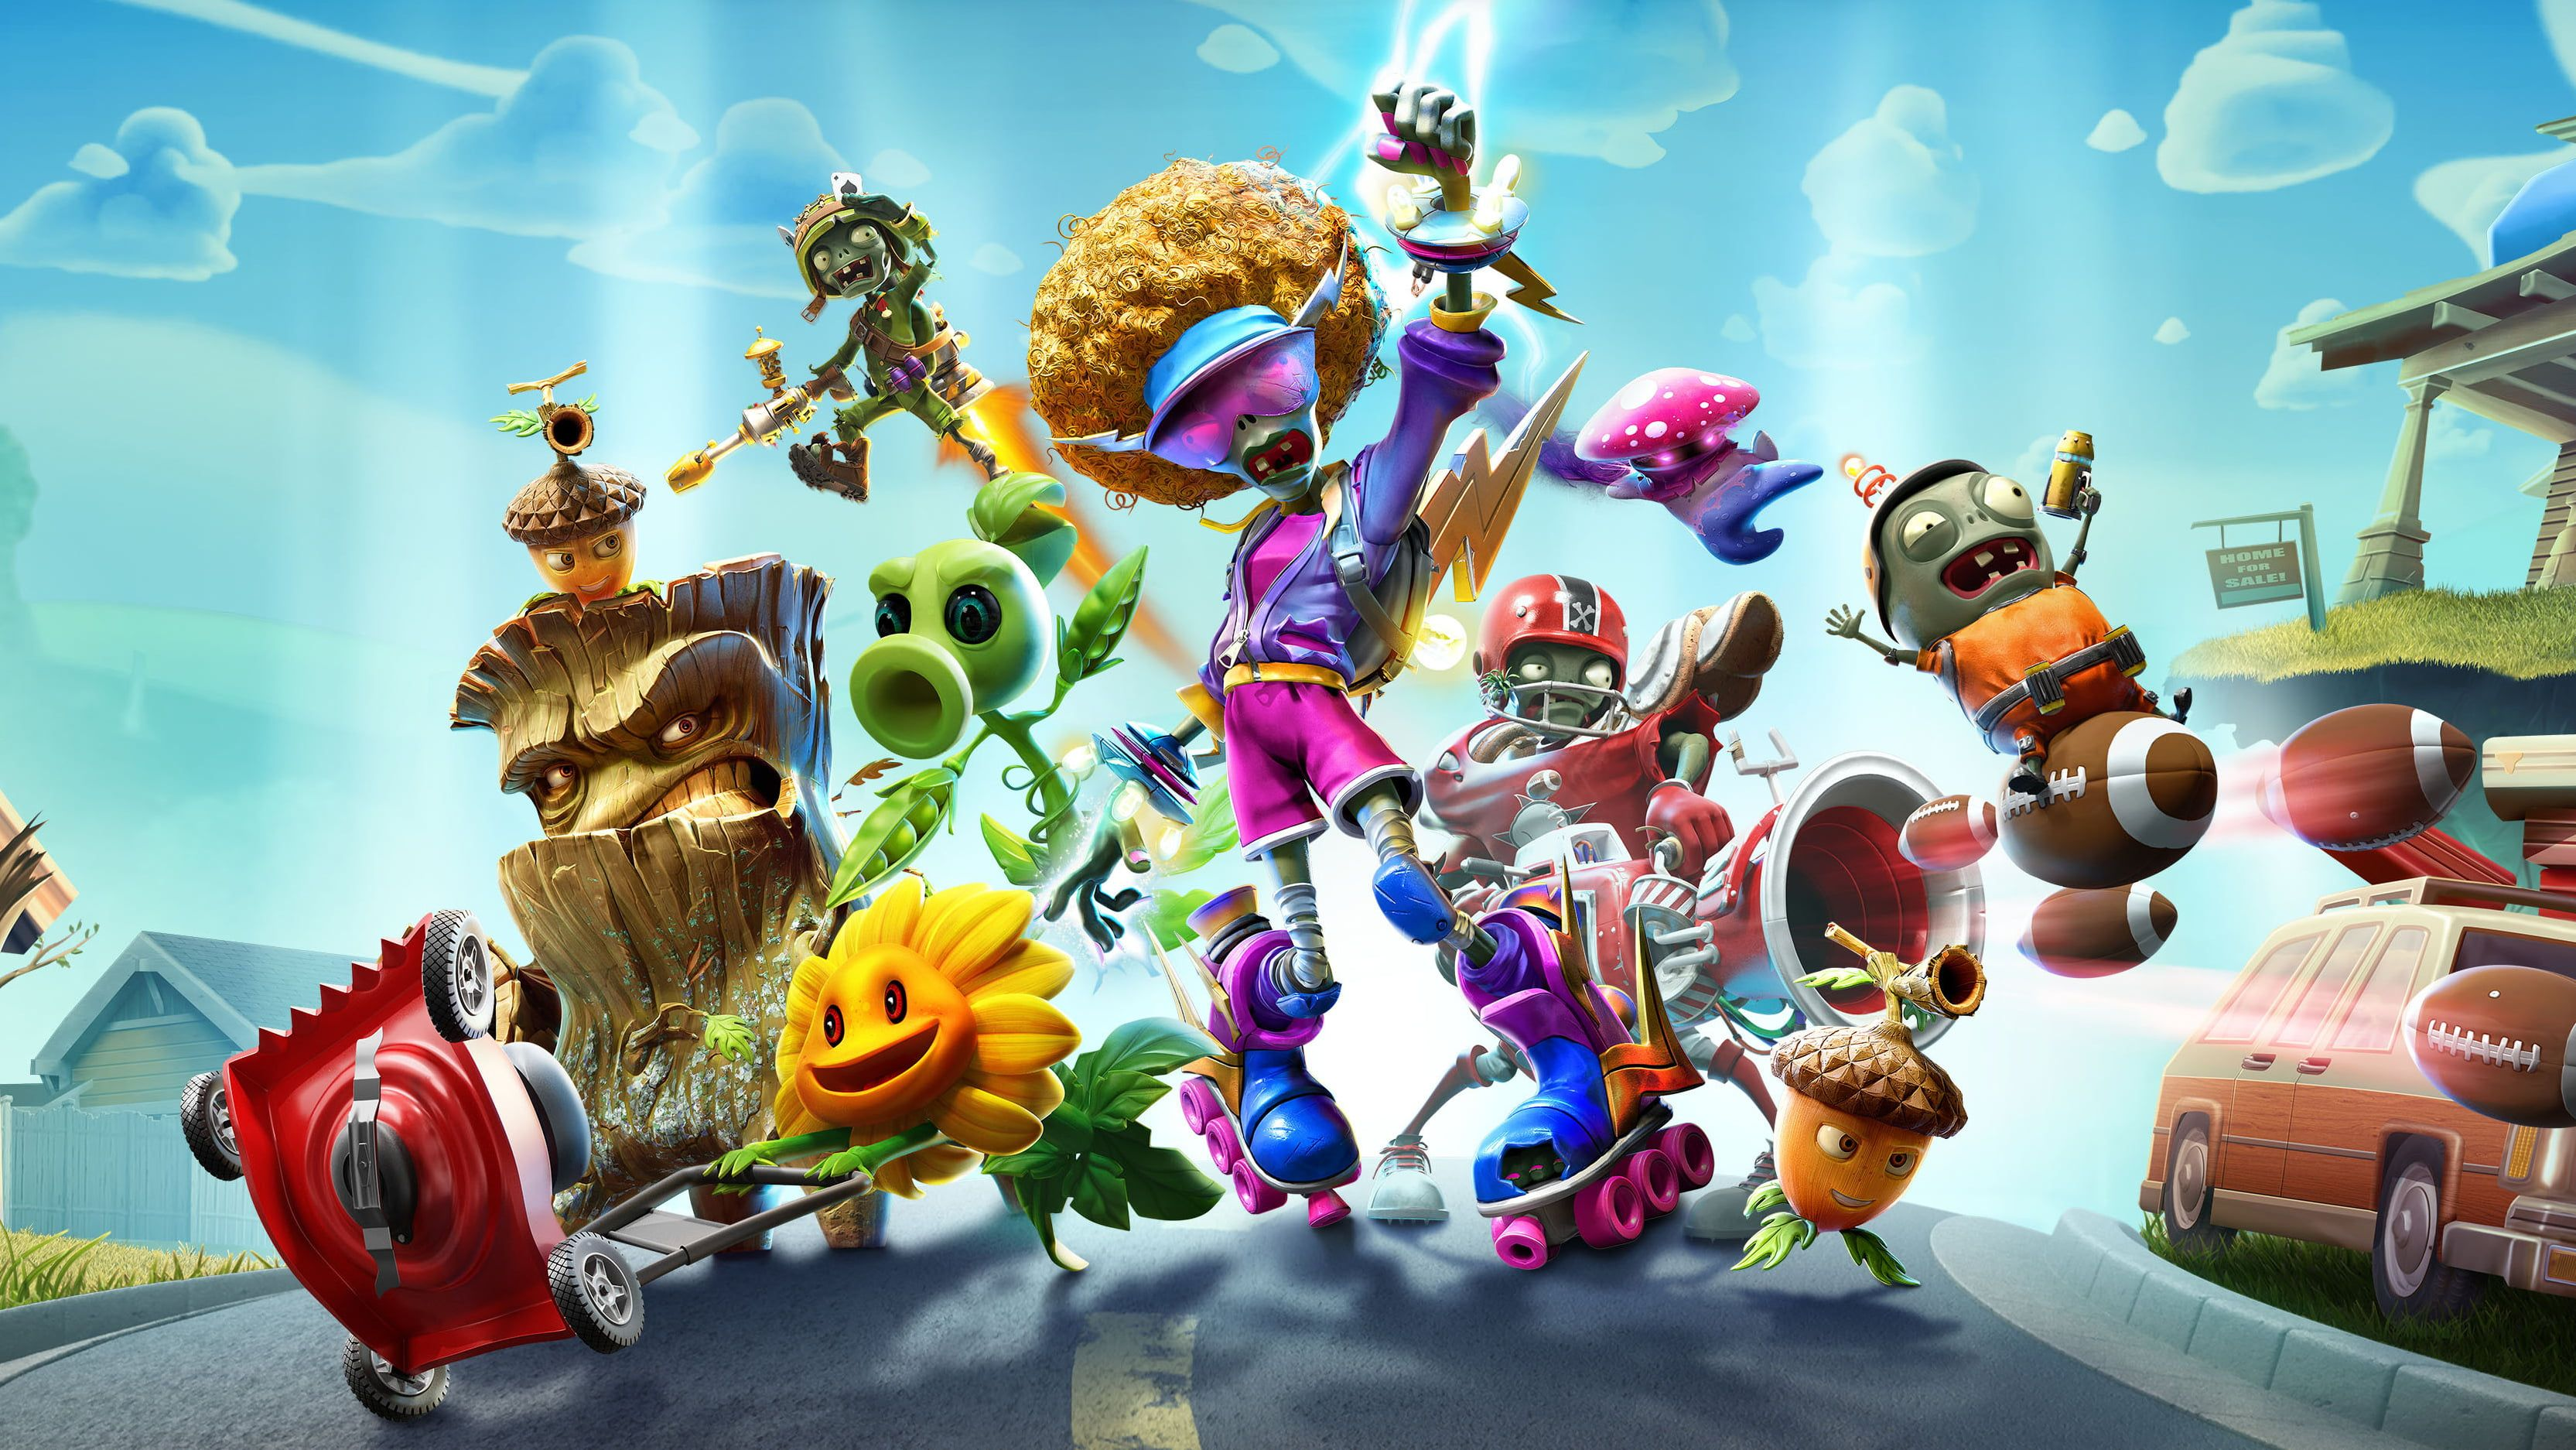 Pin By Limonche On T Shirts In 2020 Plants Vs Zombies Xbox One Zombie